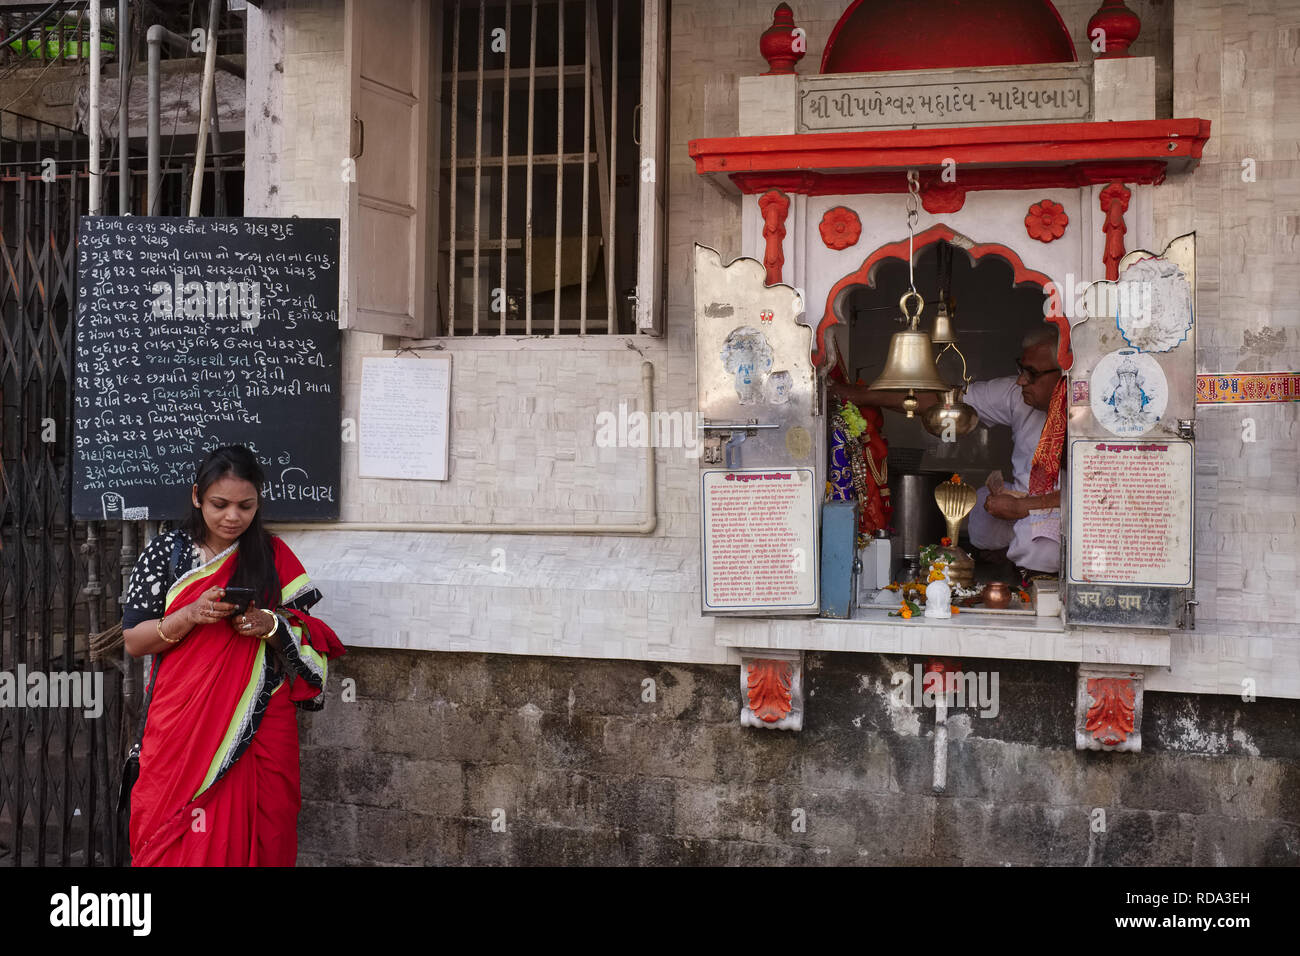 A woman uses her mobile phone, while a priest in his little shrine awaits the next worshipper and donor; Mumbai, India - Stock Image